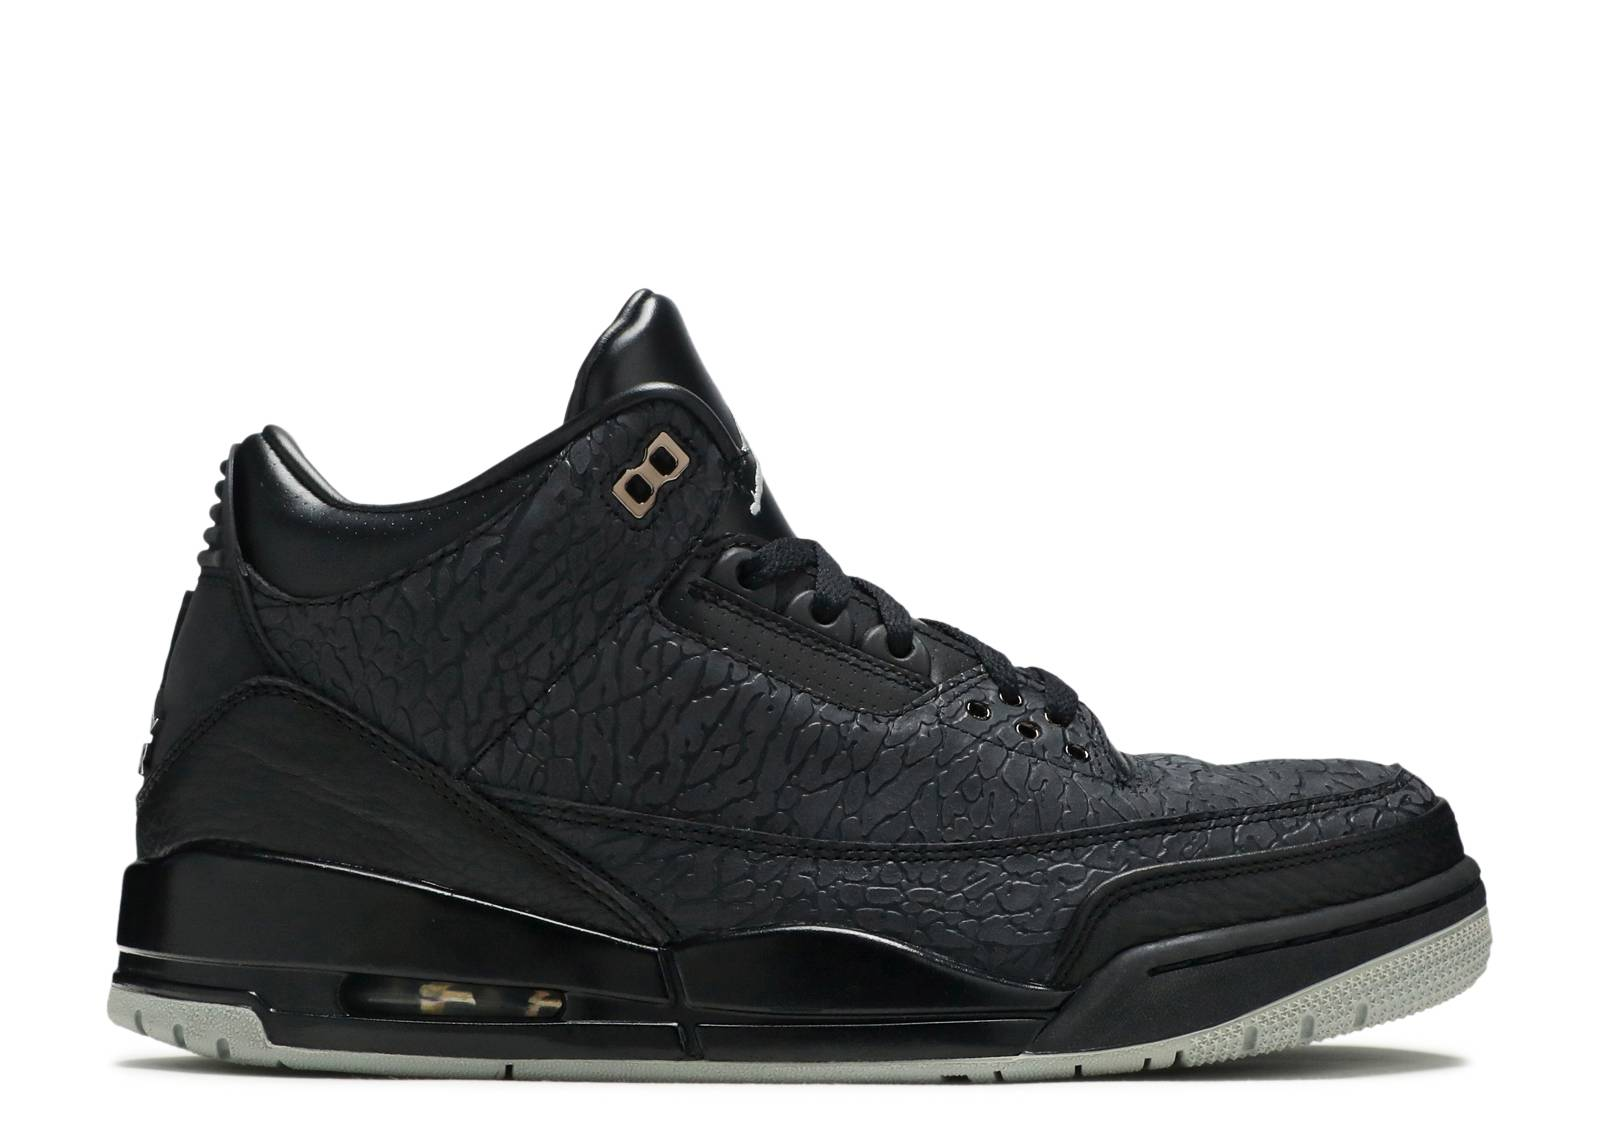 7a47932b2854 Air Jordan Retro 3 Flip - Air Jordan - 315767 001 - black metallic ...